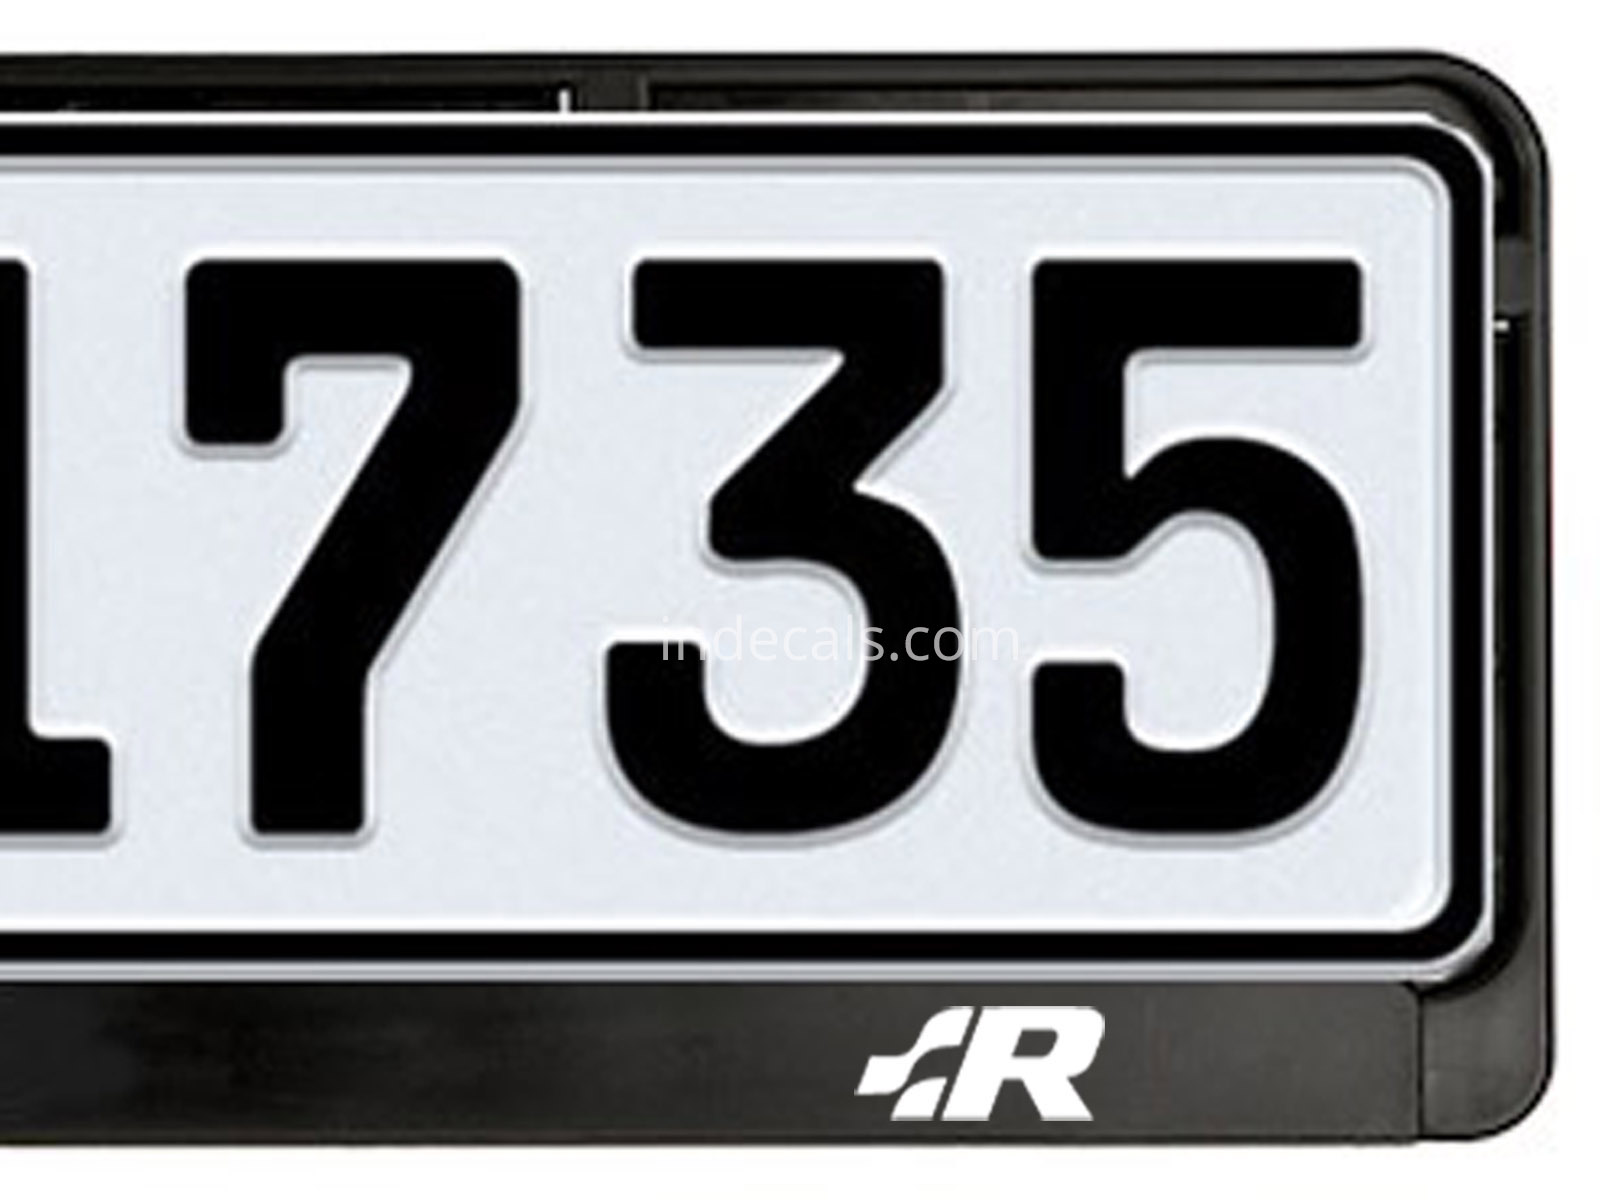 2 x Volkswagen Racing stickers for License Plate Frame